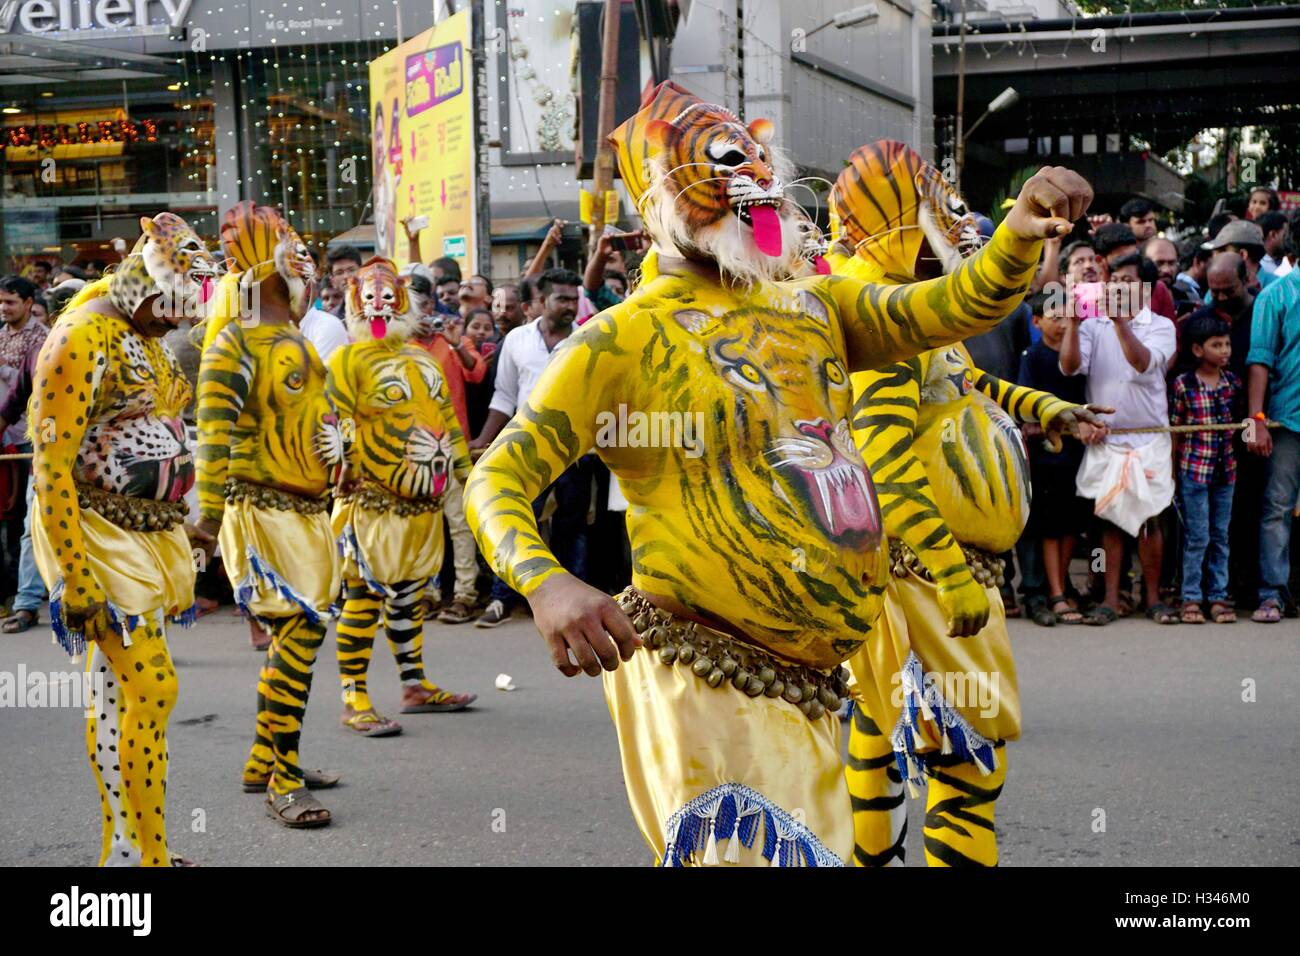 Trained dancers with their carefully painted bodies guise of tigers perform the famous Pulikali streets Thrissur - Stock Image